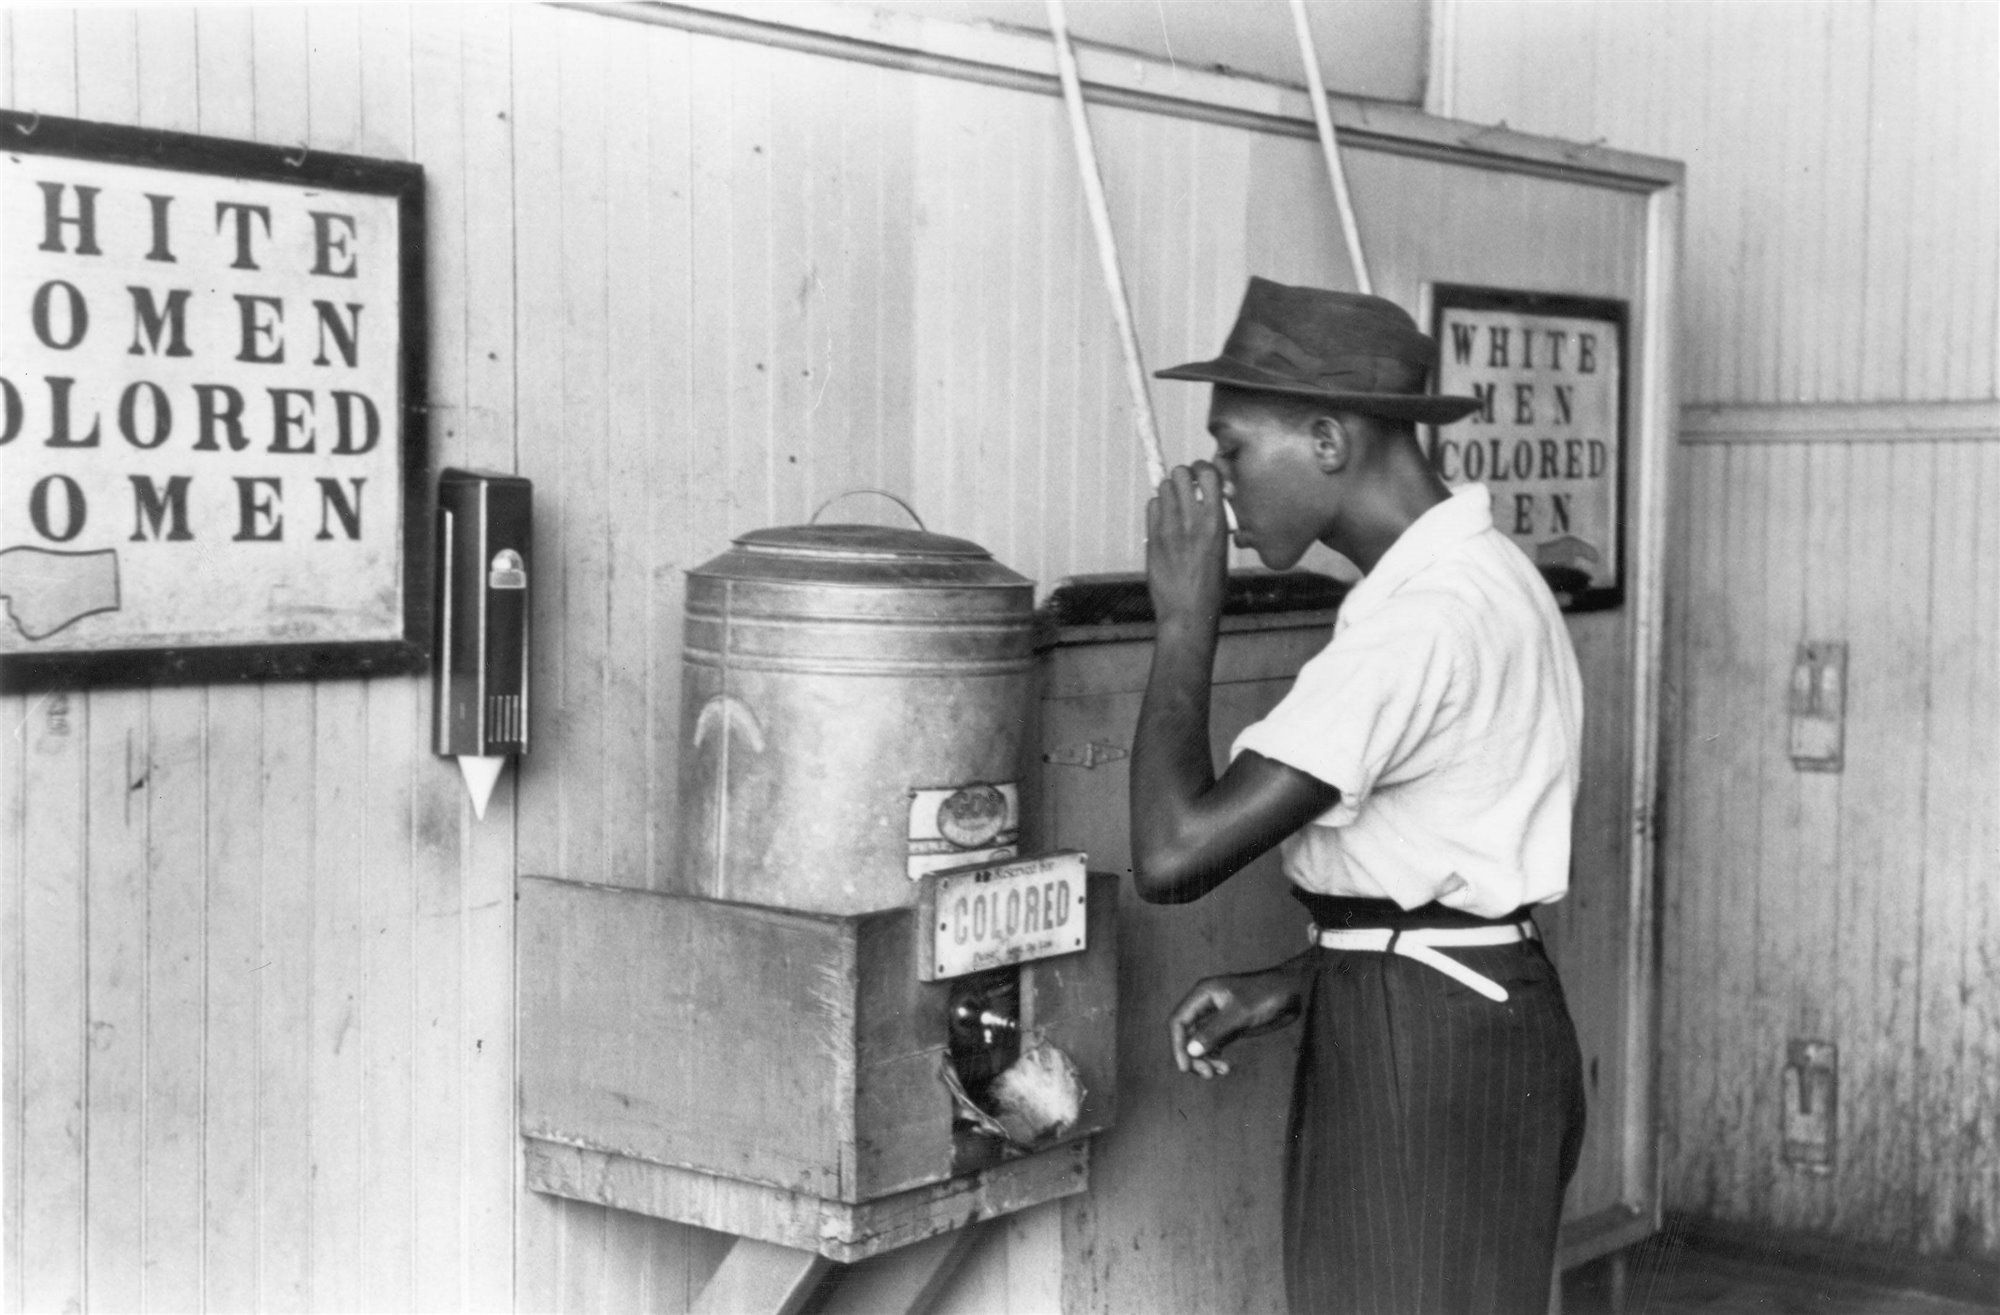 1896 - Separate but Equal